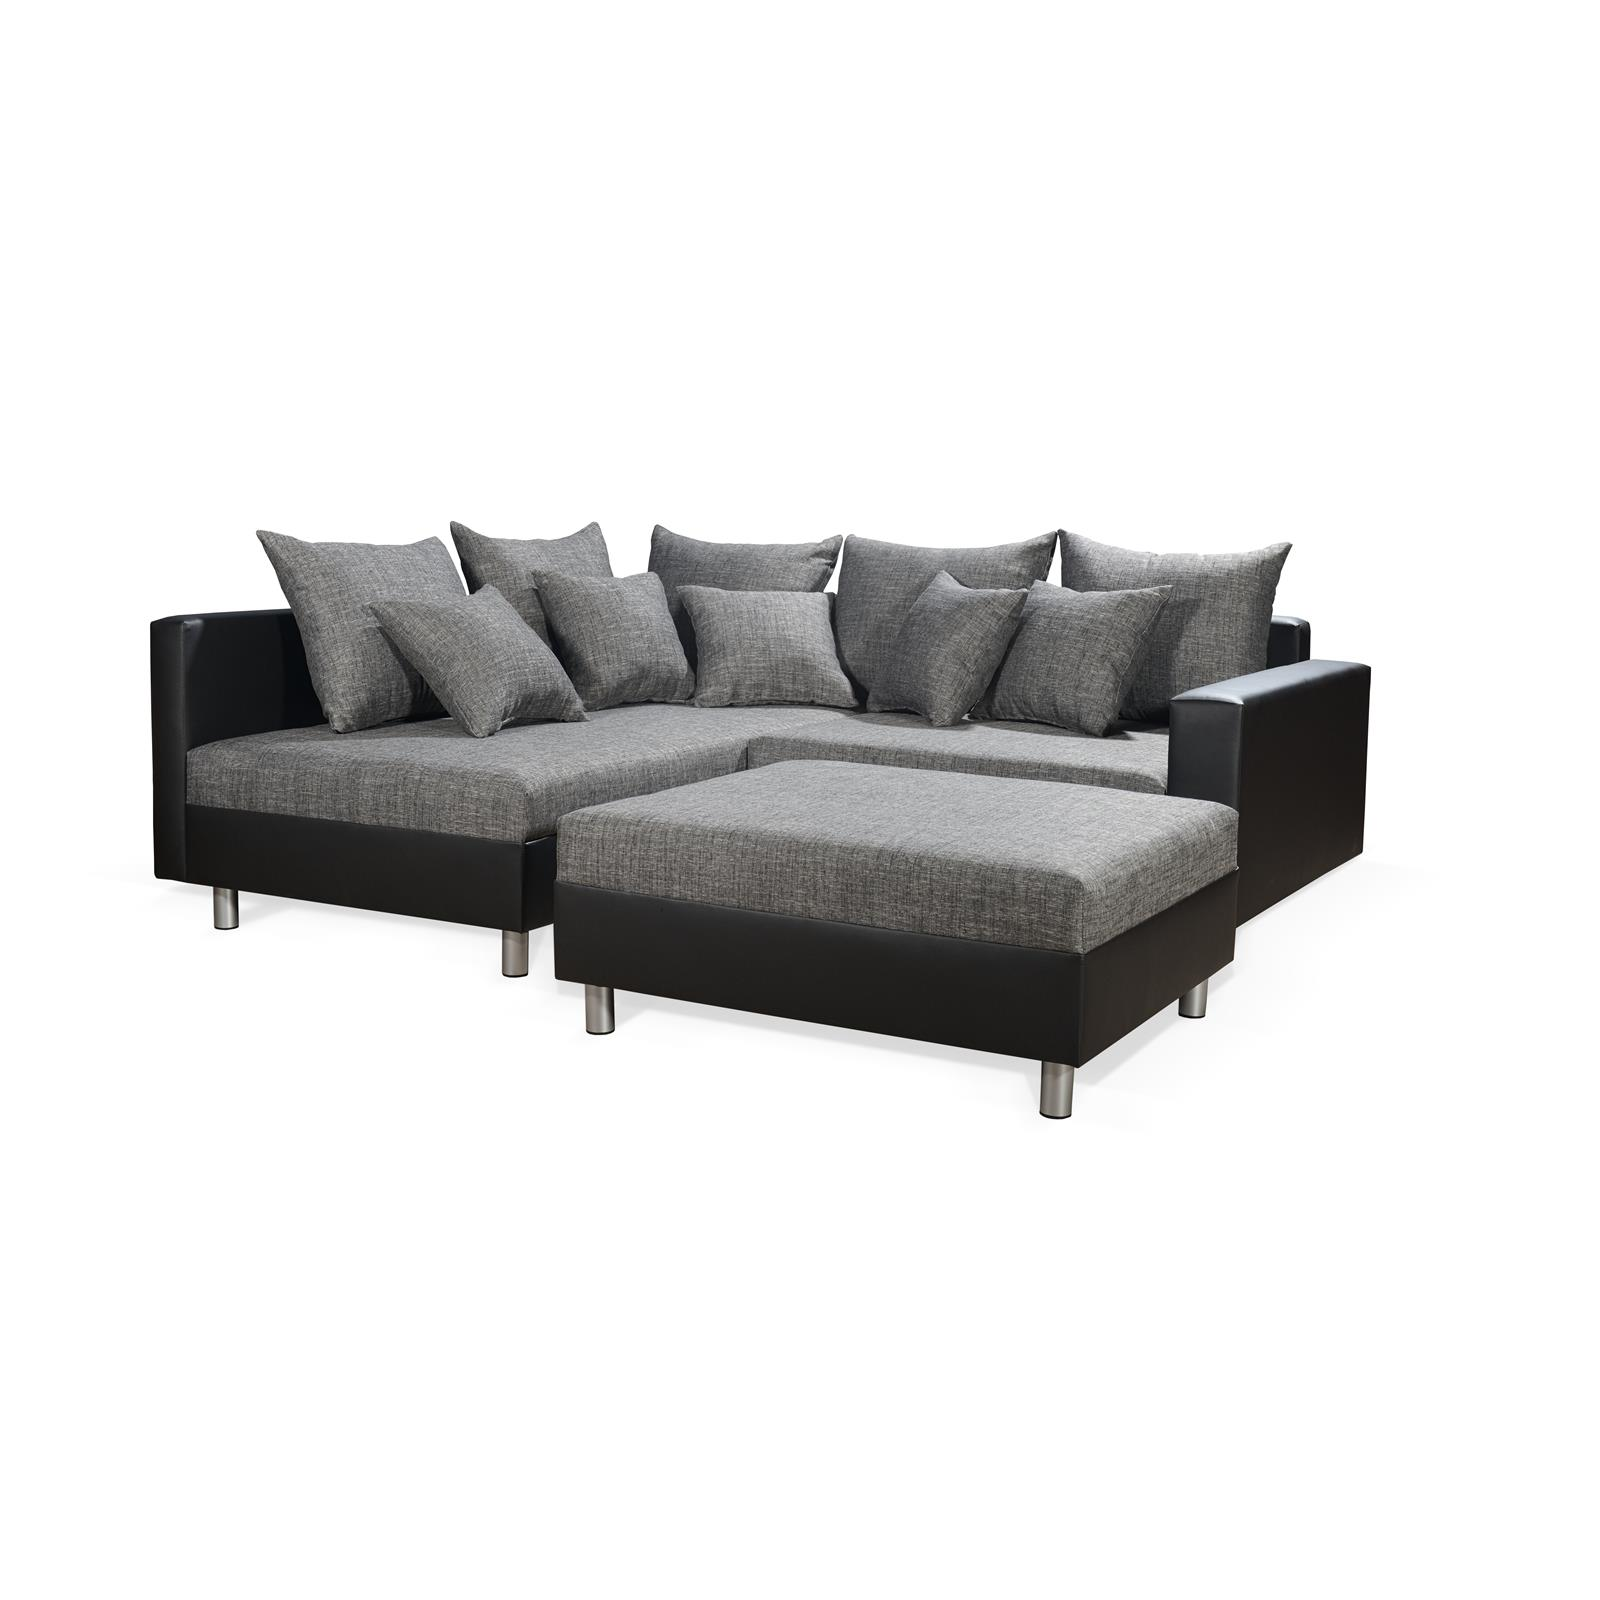 ecksofa couch mit hocker in schwarz grau weiss polster. Black Bedroom Furniture Sets. Home Design Ideas